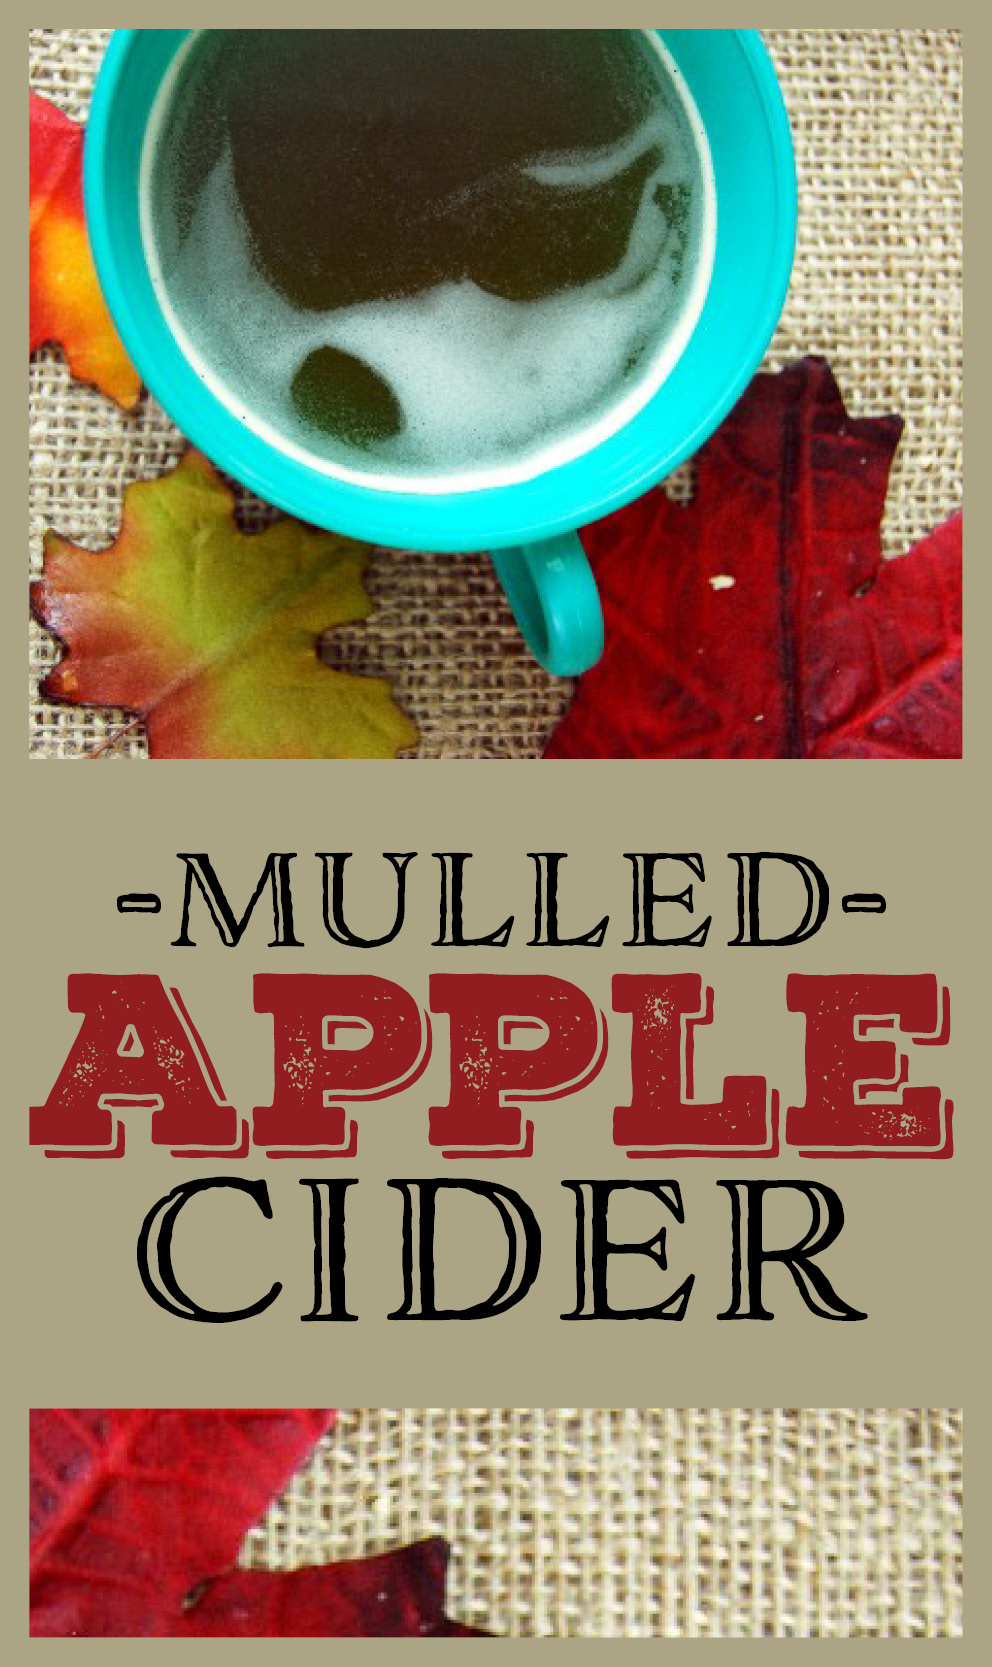 Enjoy the tastes of the fall season with some homemade Mulled Apple Cider! #applecider #mulledcider #mulledapplecider #homemadecider